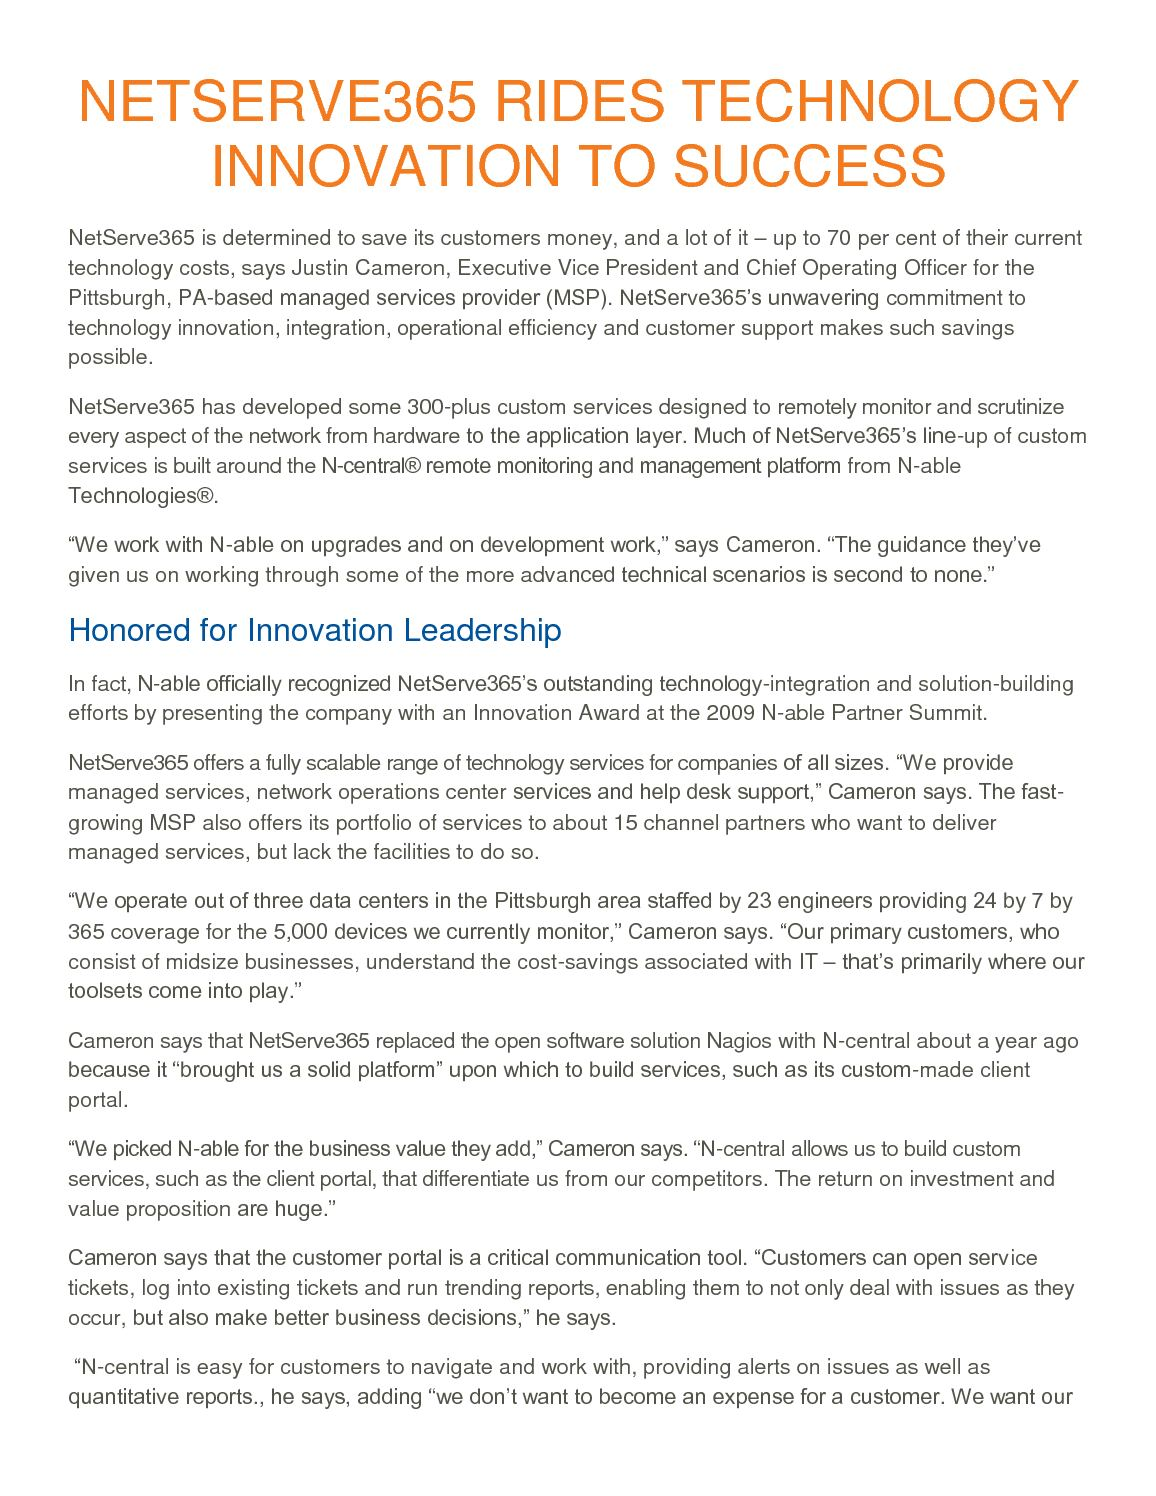 Calameo Netserve365 Rides It Technology Innovation To Managed Services Success